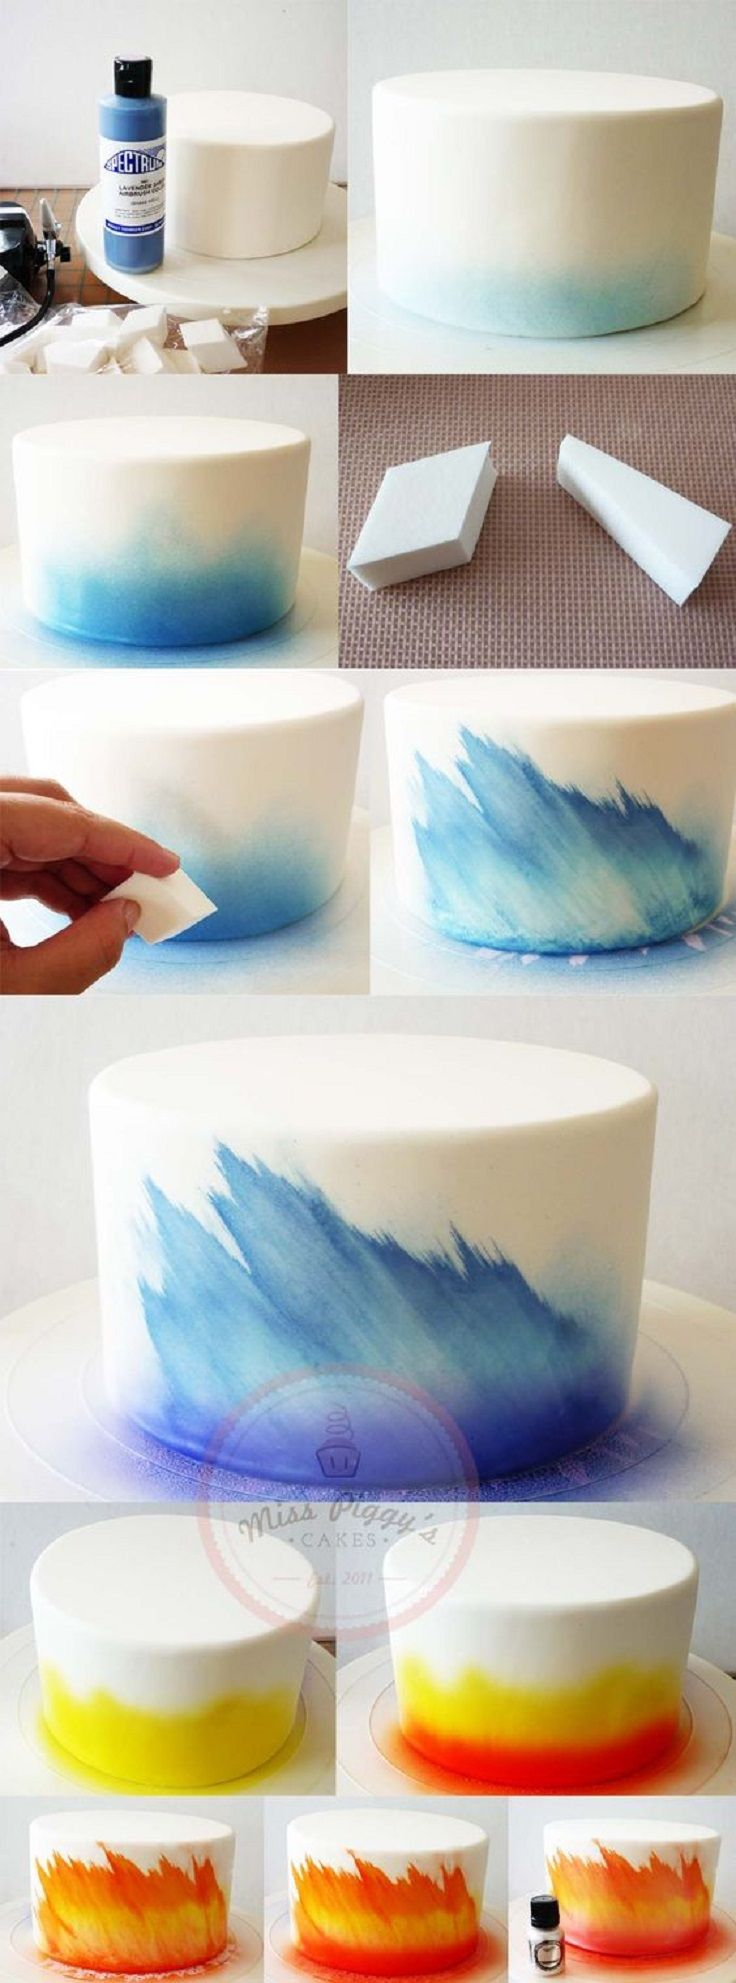 Photo of DIY Ombre Cake Technique with Airbrush and Makeup Sponge – 17 Amazing Cake Decor…